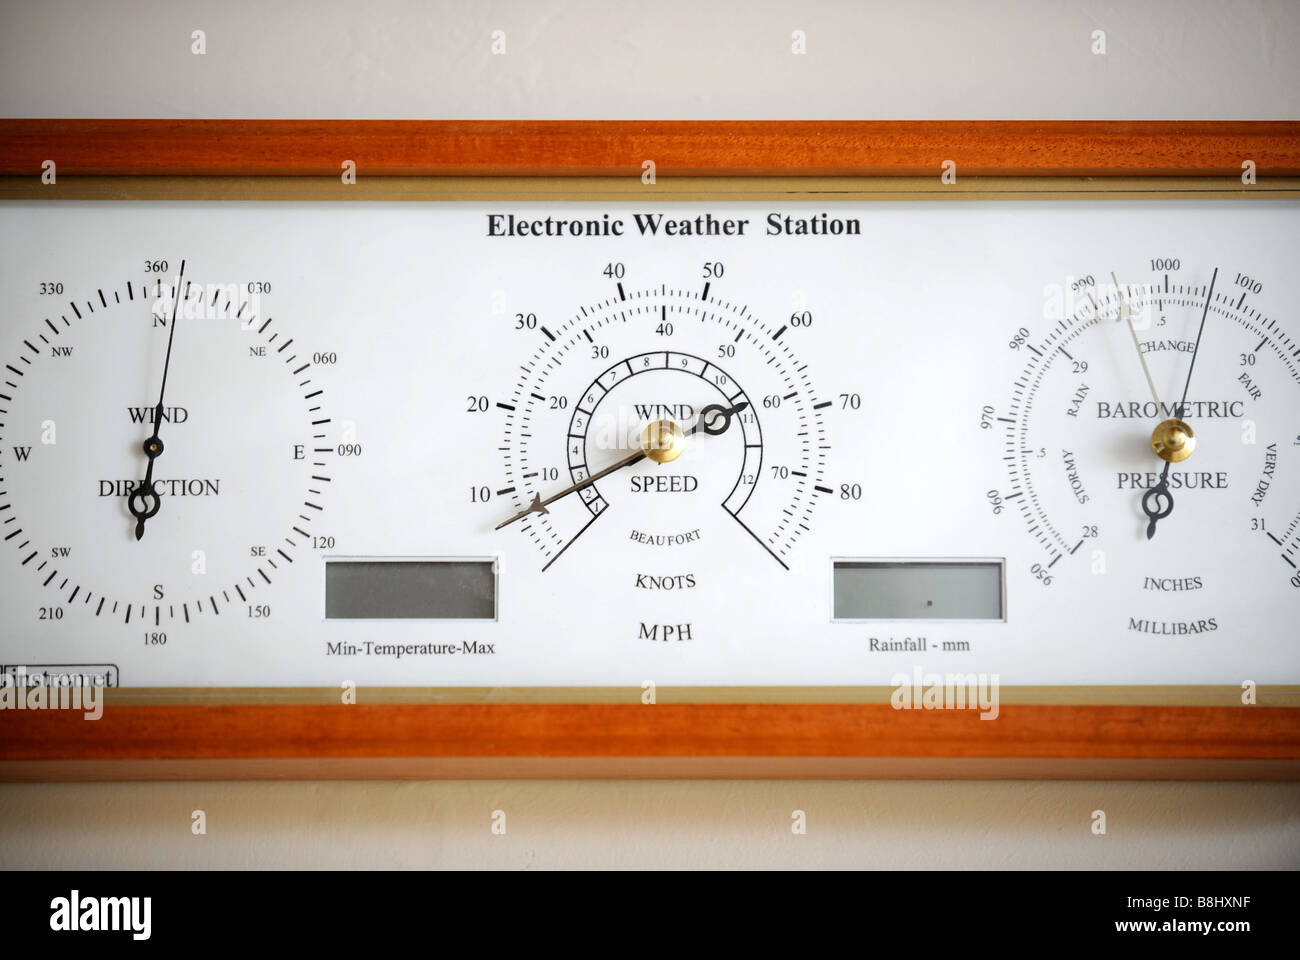 Barometric Pressure Stock Photos Images How To Build Electronic Torricelli Barometer An Weather Station Monitor In Energy Efficient Home Powered By A Wind Turbine And